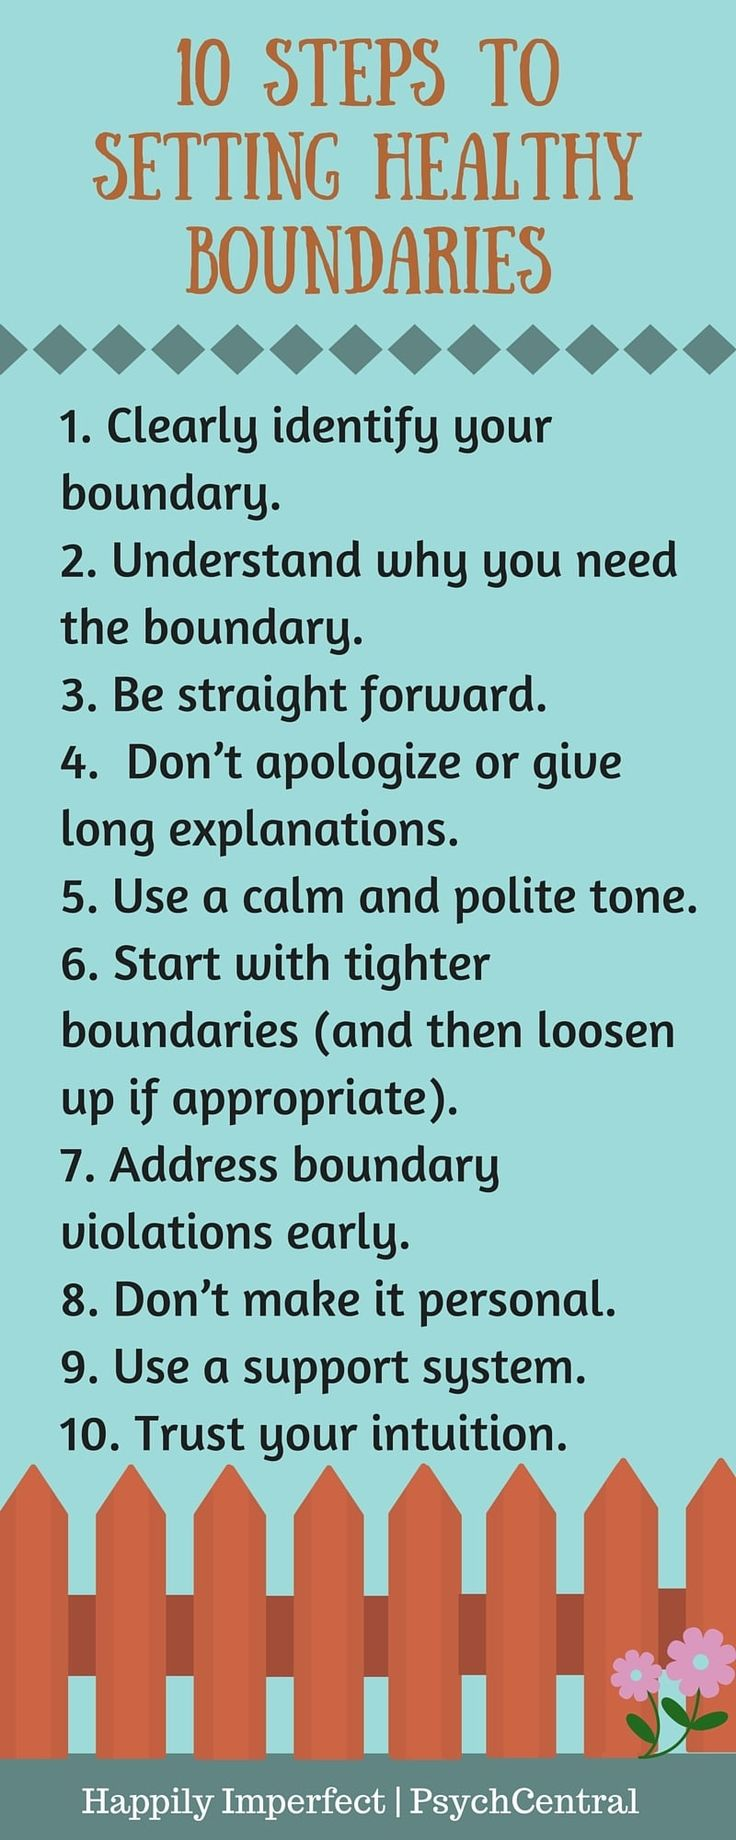 10 Steps to Setting Boundaries